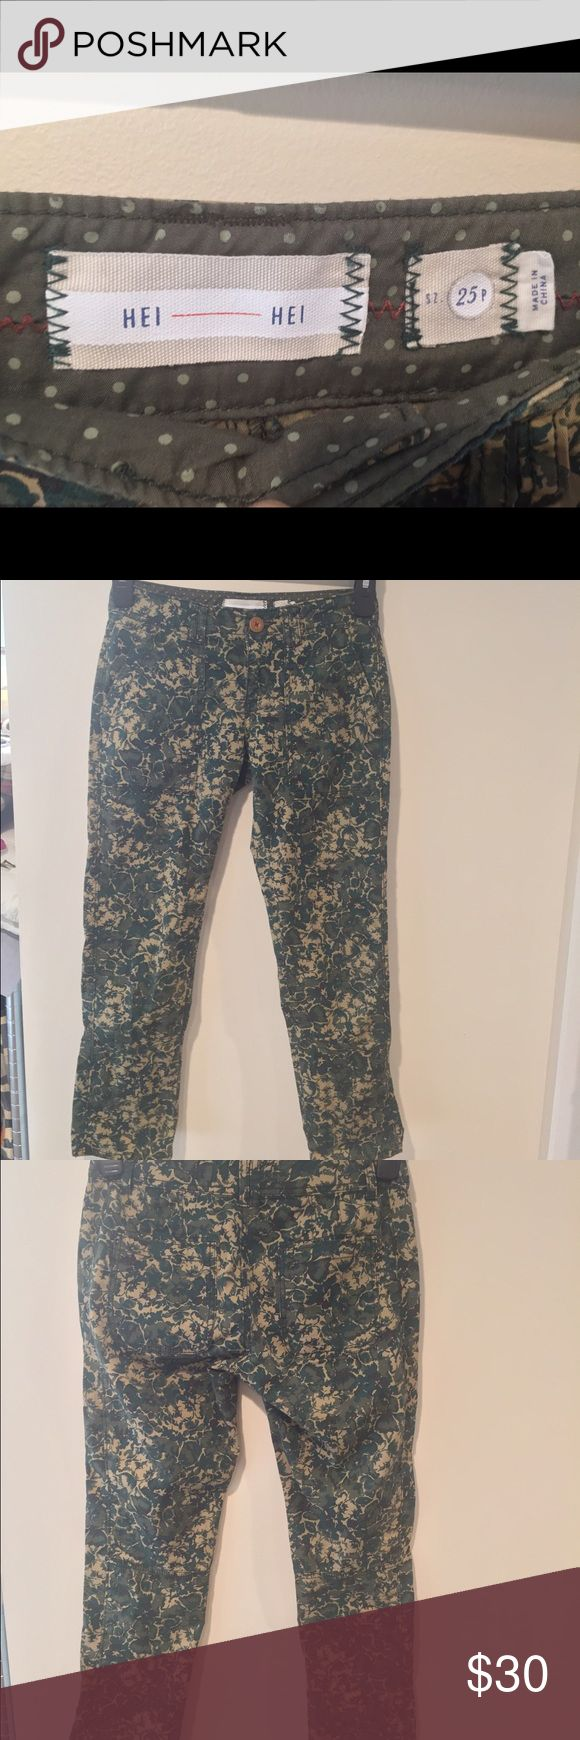 Anthropologie brand pants Size 25 petite. Camouflage type print but with flowers. Anthropologie Pants